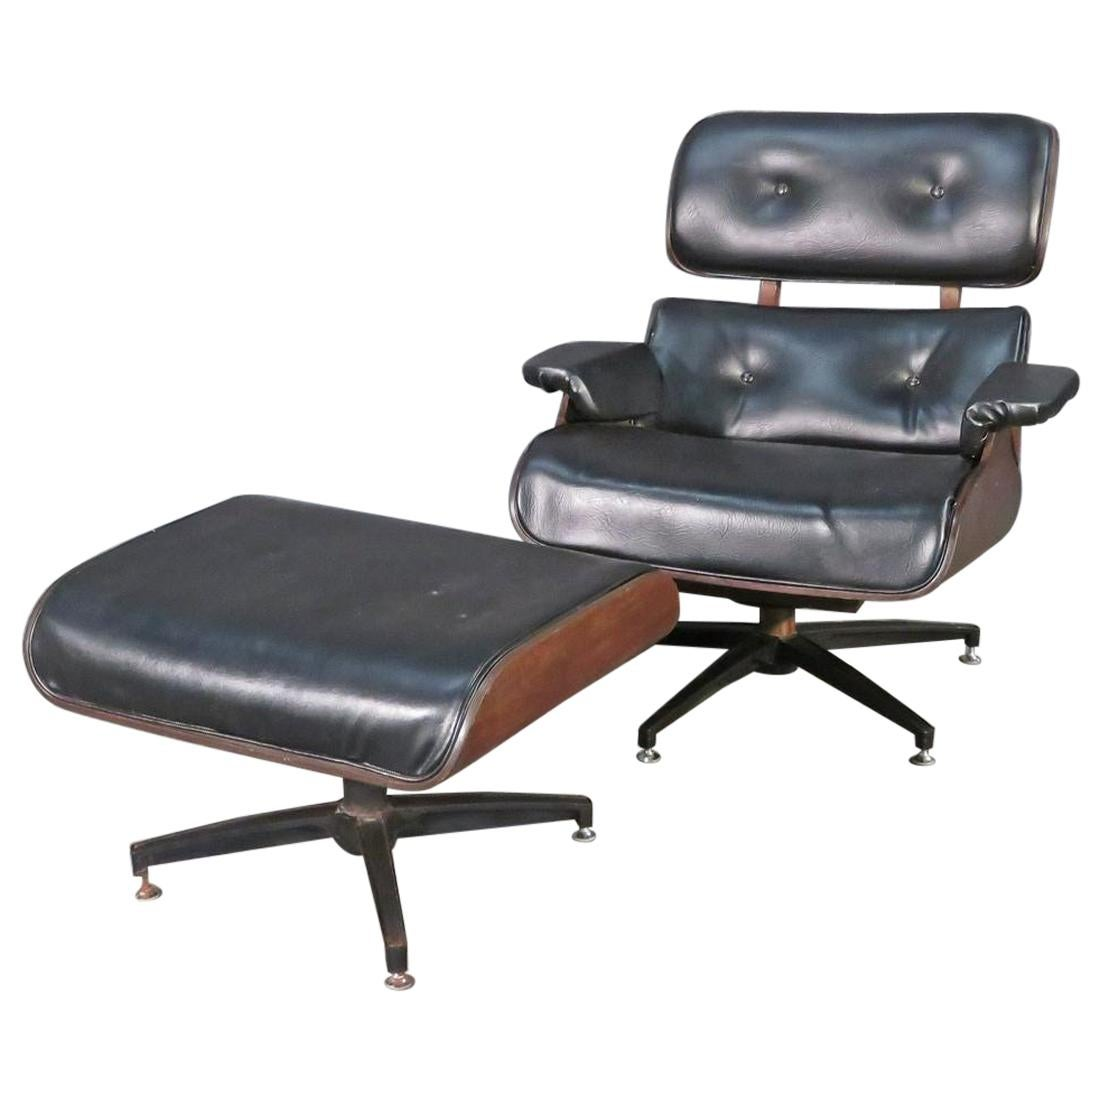 Plycraft Eames Style Lounge and Ottoman